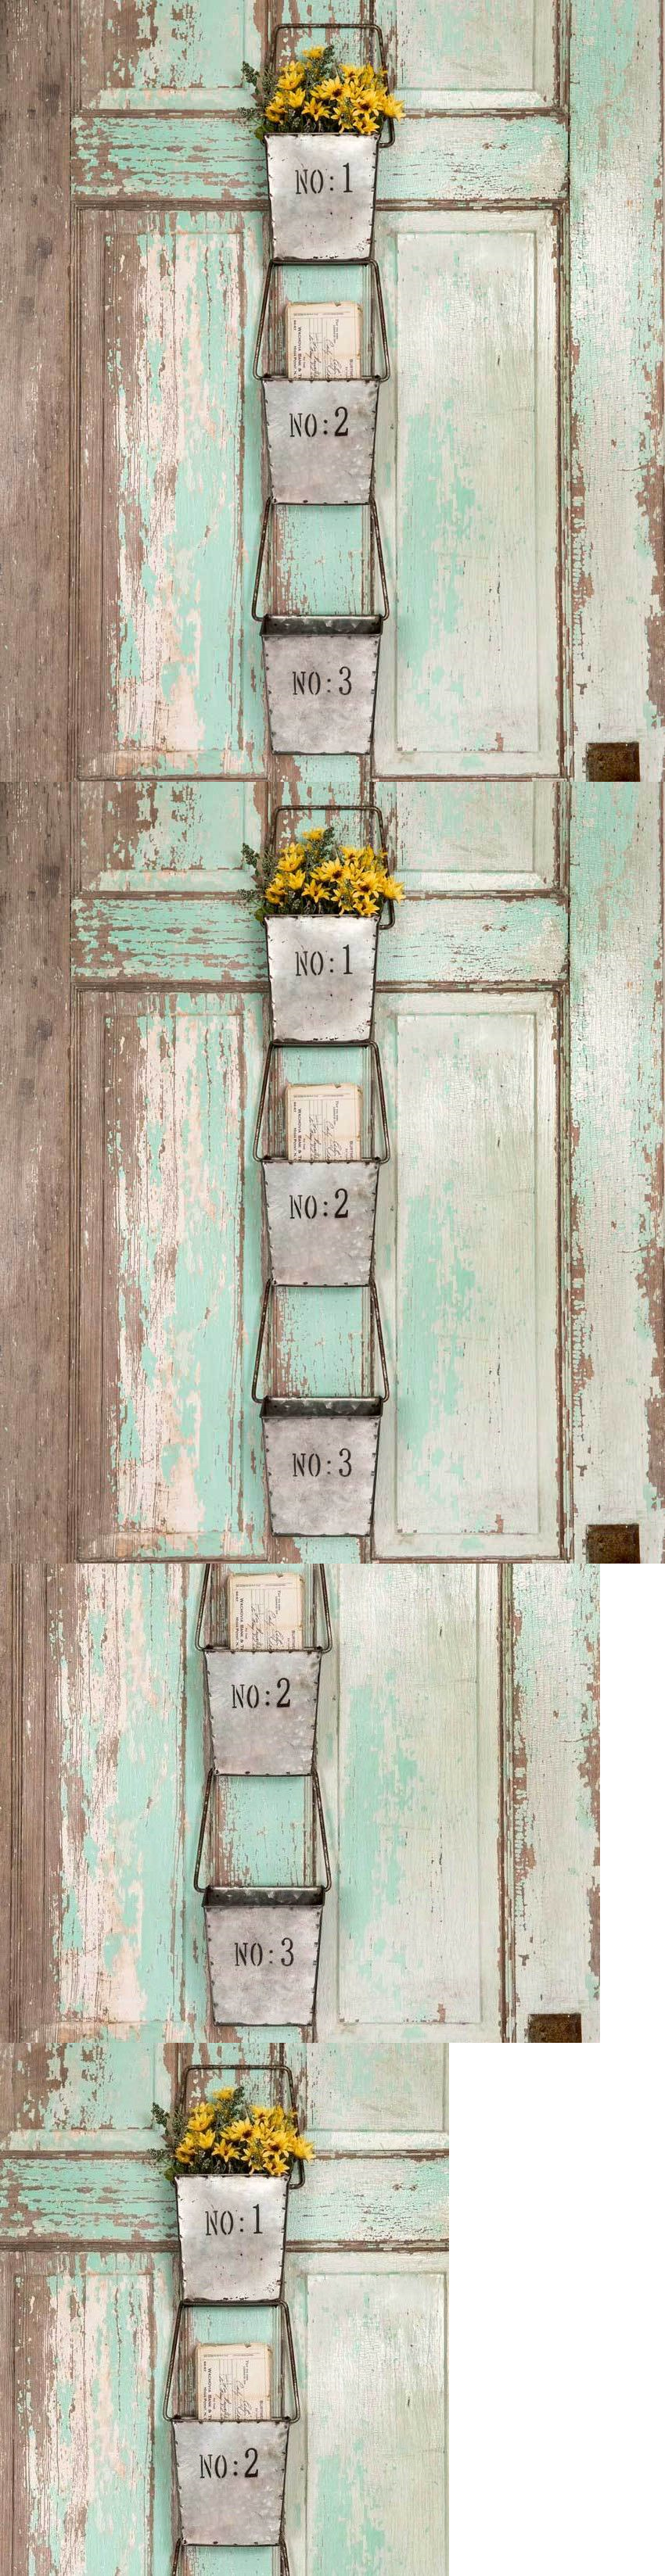 wall pockets rustic country style metal set of three hanging wall pockets organizer